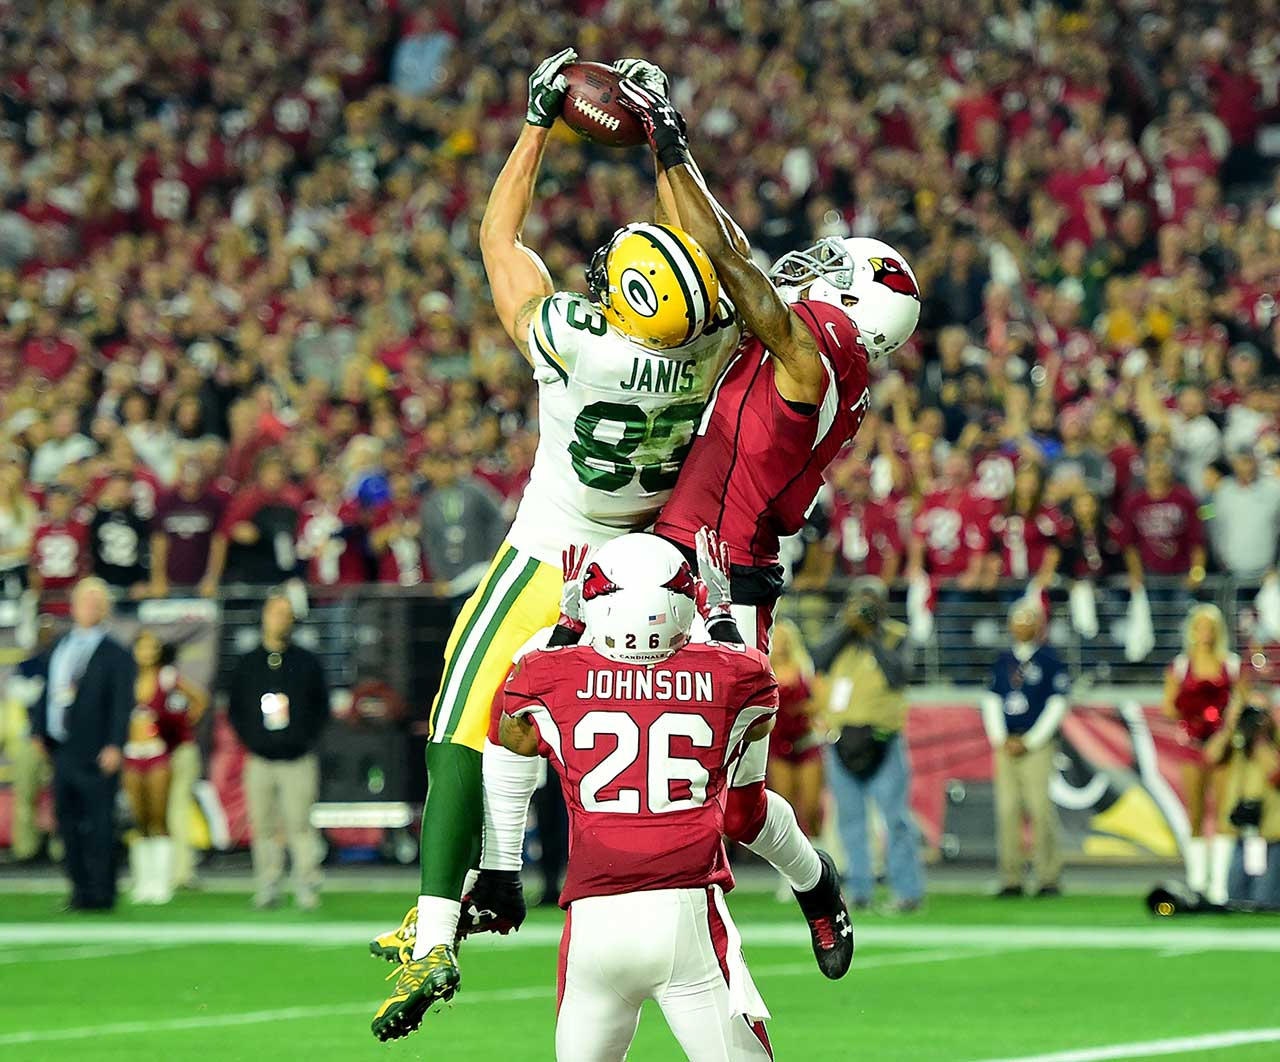 Jeff Janis sent the game into overtime with a Hail Mary touchdown reception from Aaron Rodgers in the final minute.